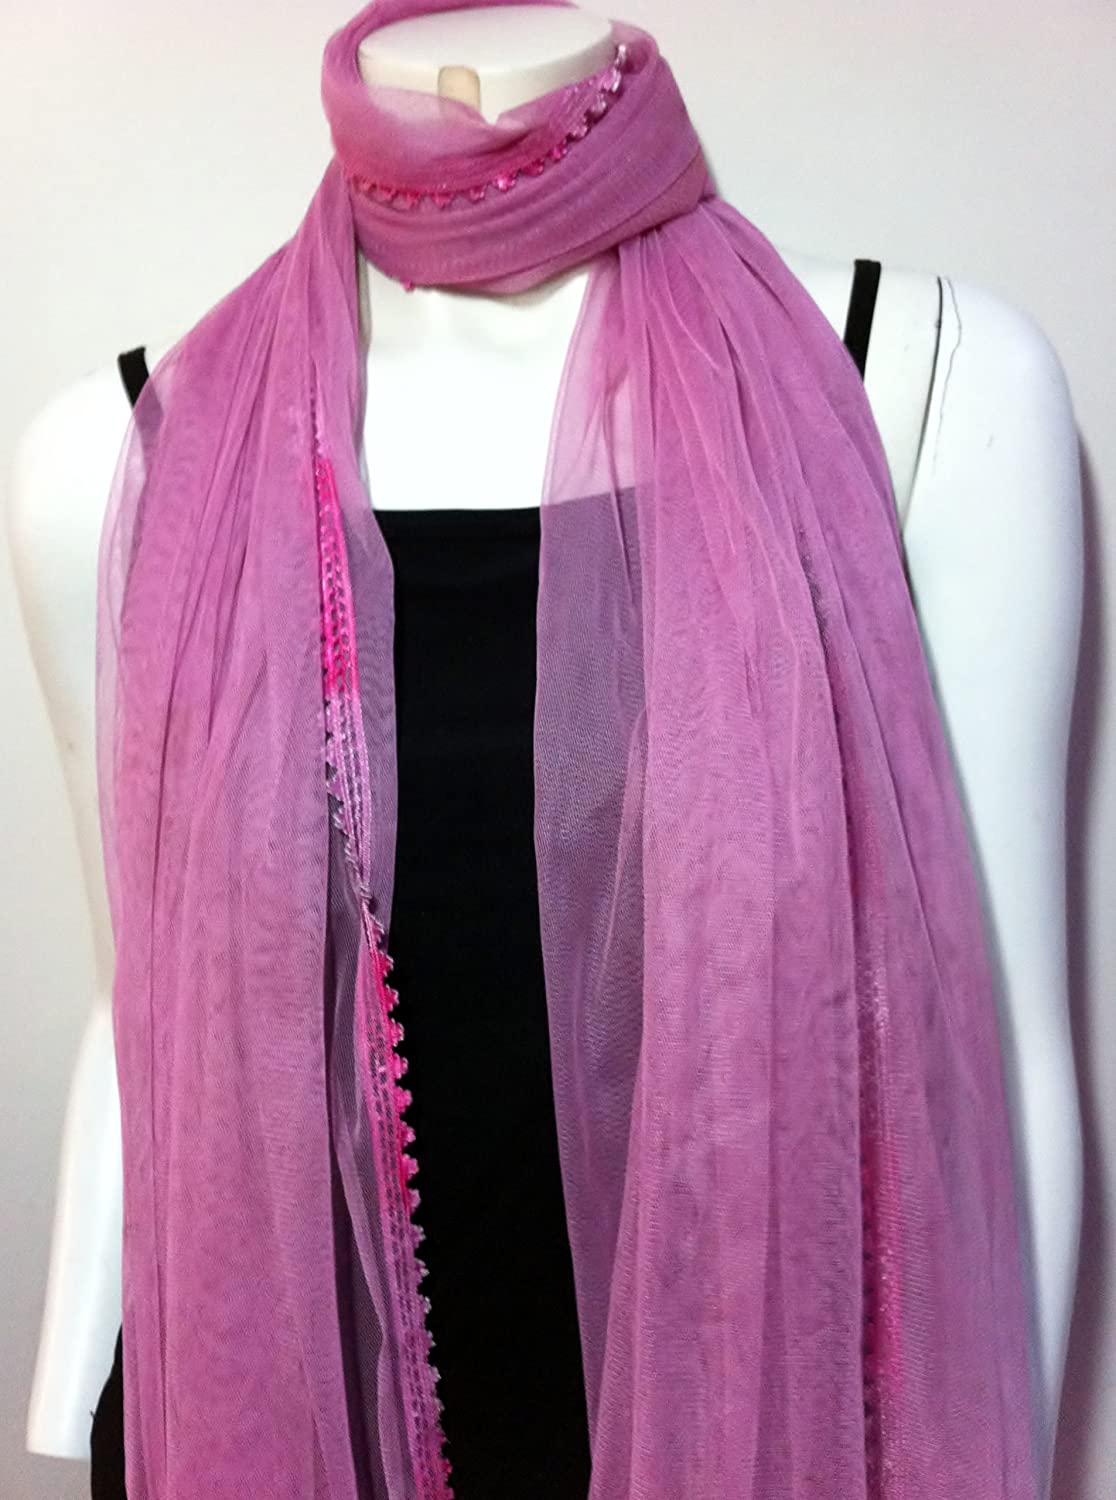 Long Pink Net Scarf, Cool Accessory, Neck Wear Wrap, Great Affordable Gift for Girls Women Ladies